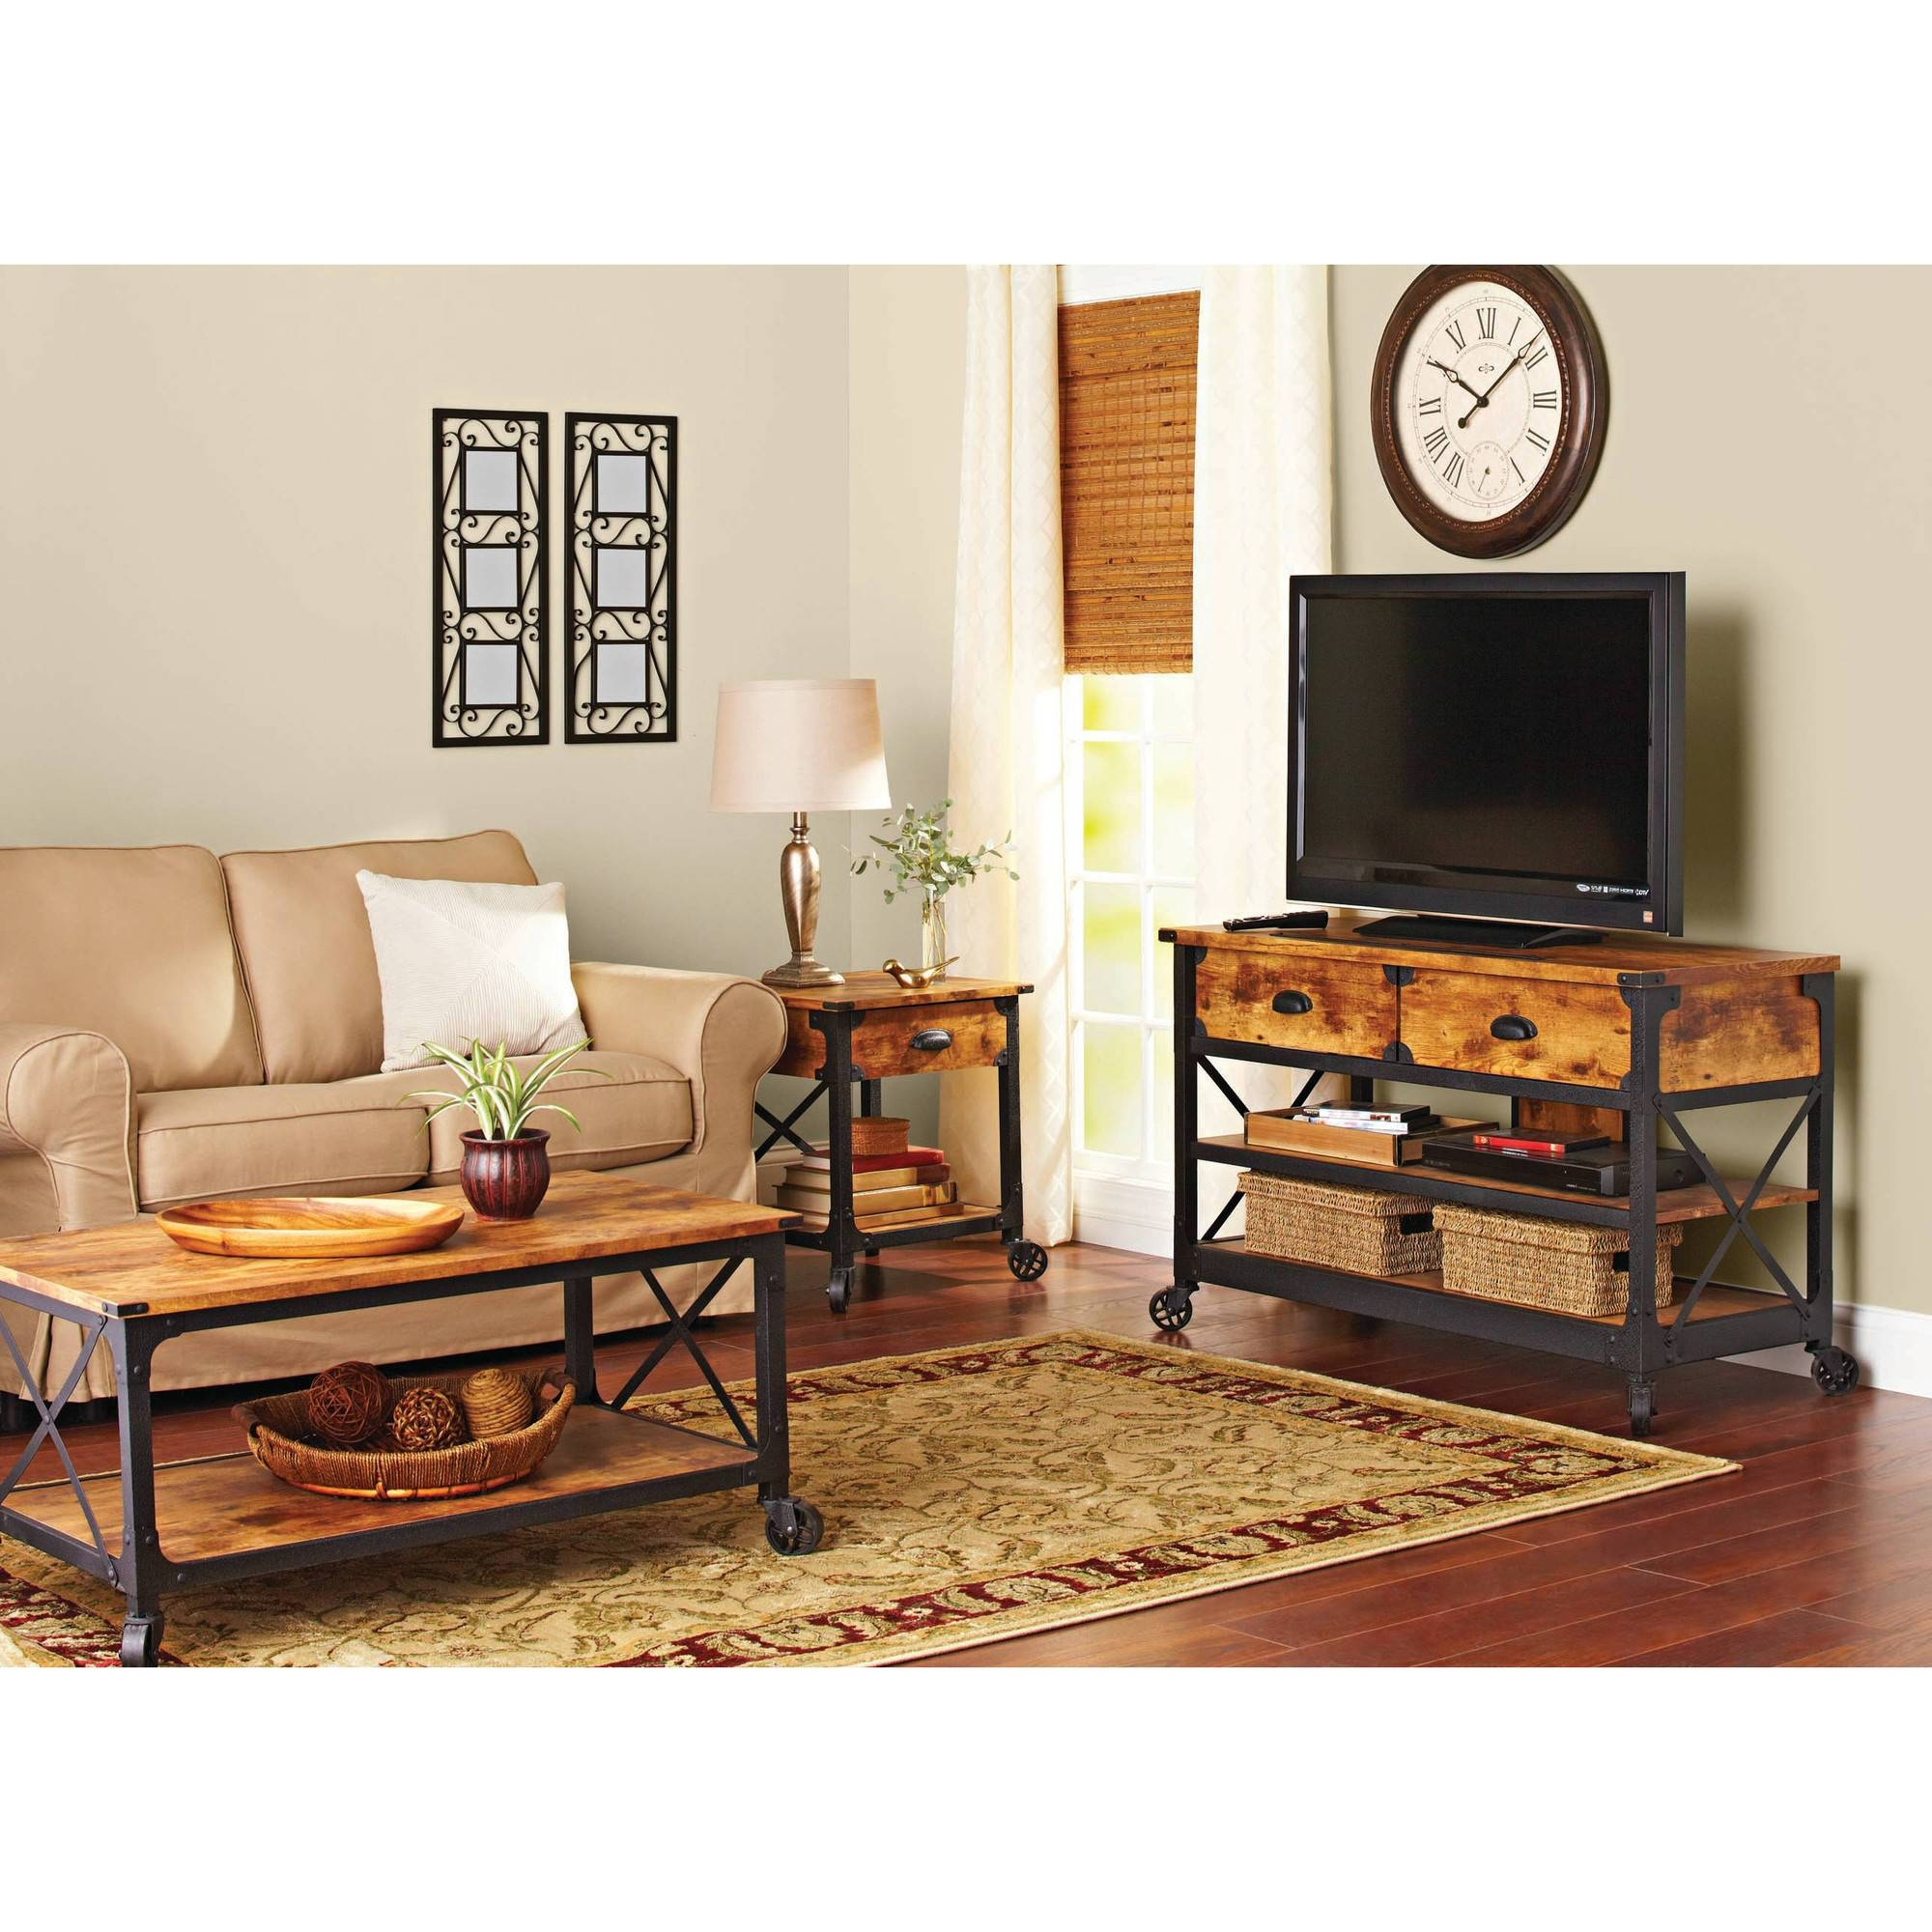 Better Homes And Gardens Rustic Country Antiqued Black/pine Panel with Matching Tv Unit and Coffee Tables (Image 6 of 30)